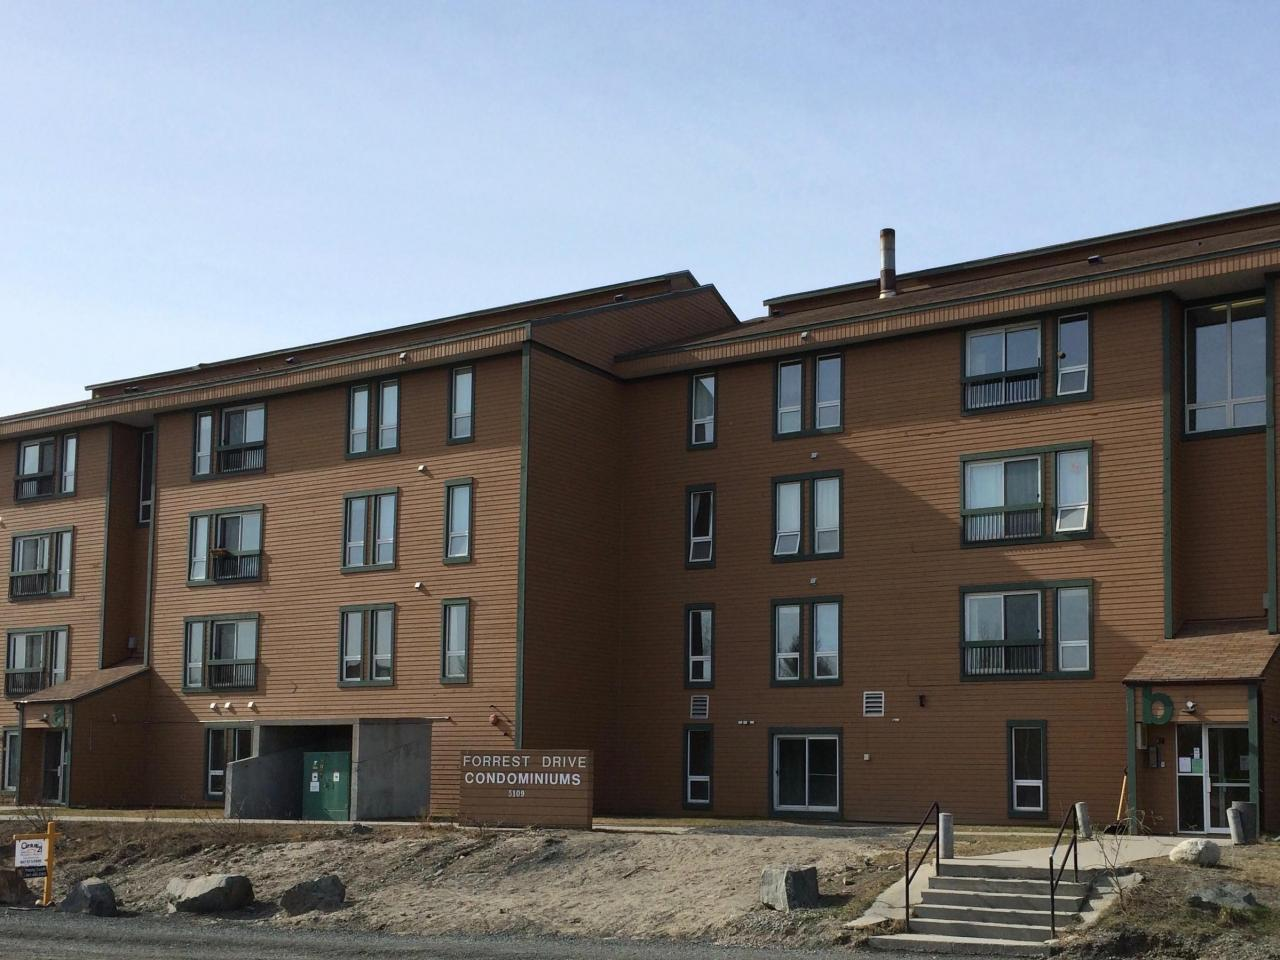 5109 Forrest Drive Condos, Frame Lake, Yellowknife